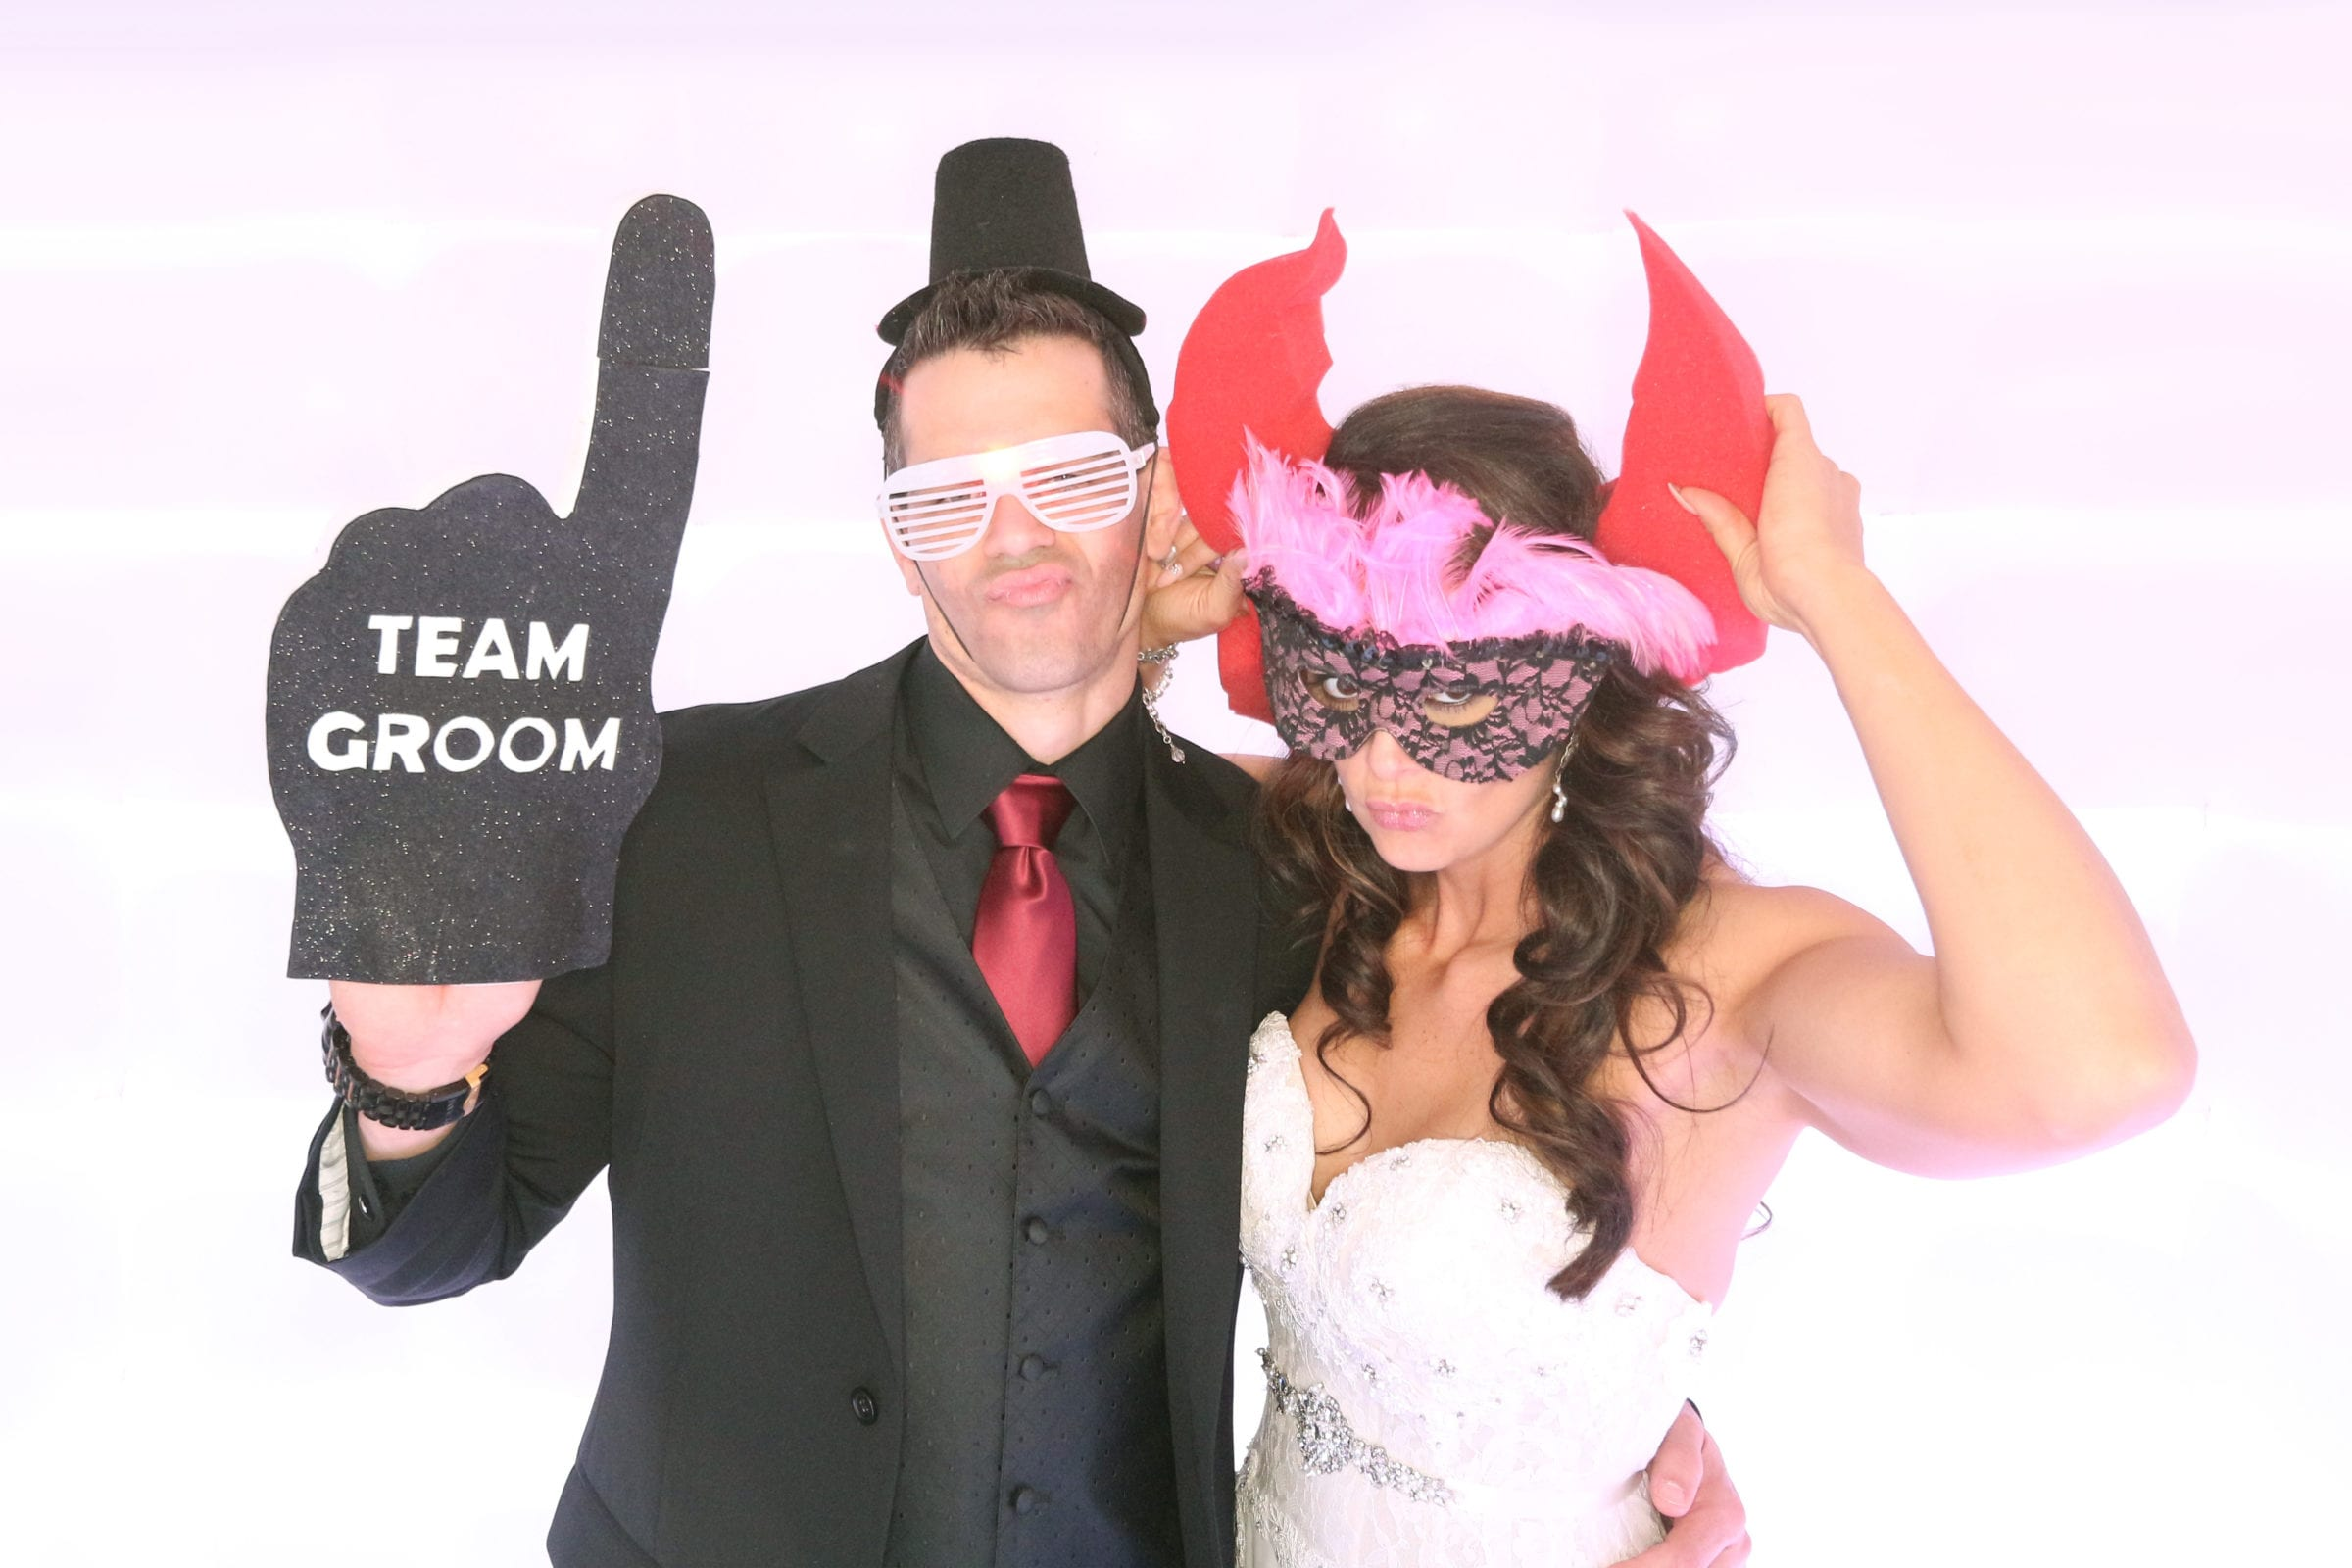 wedding photo booth san antonio wedding photo booth rental san antonio photo booth company san antonio